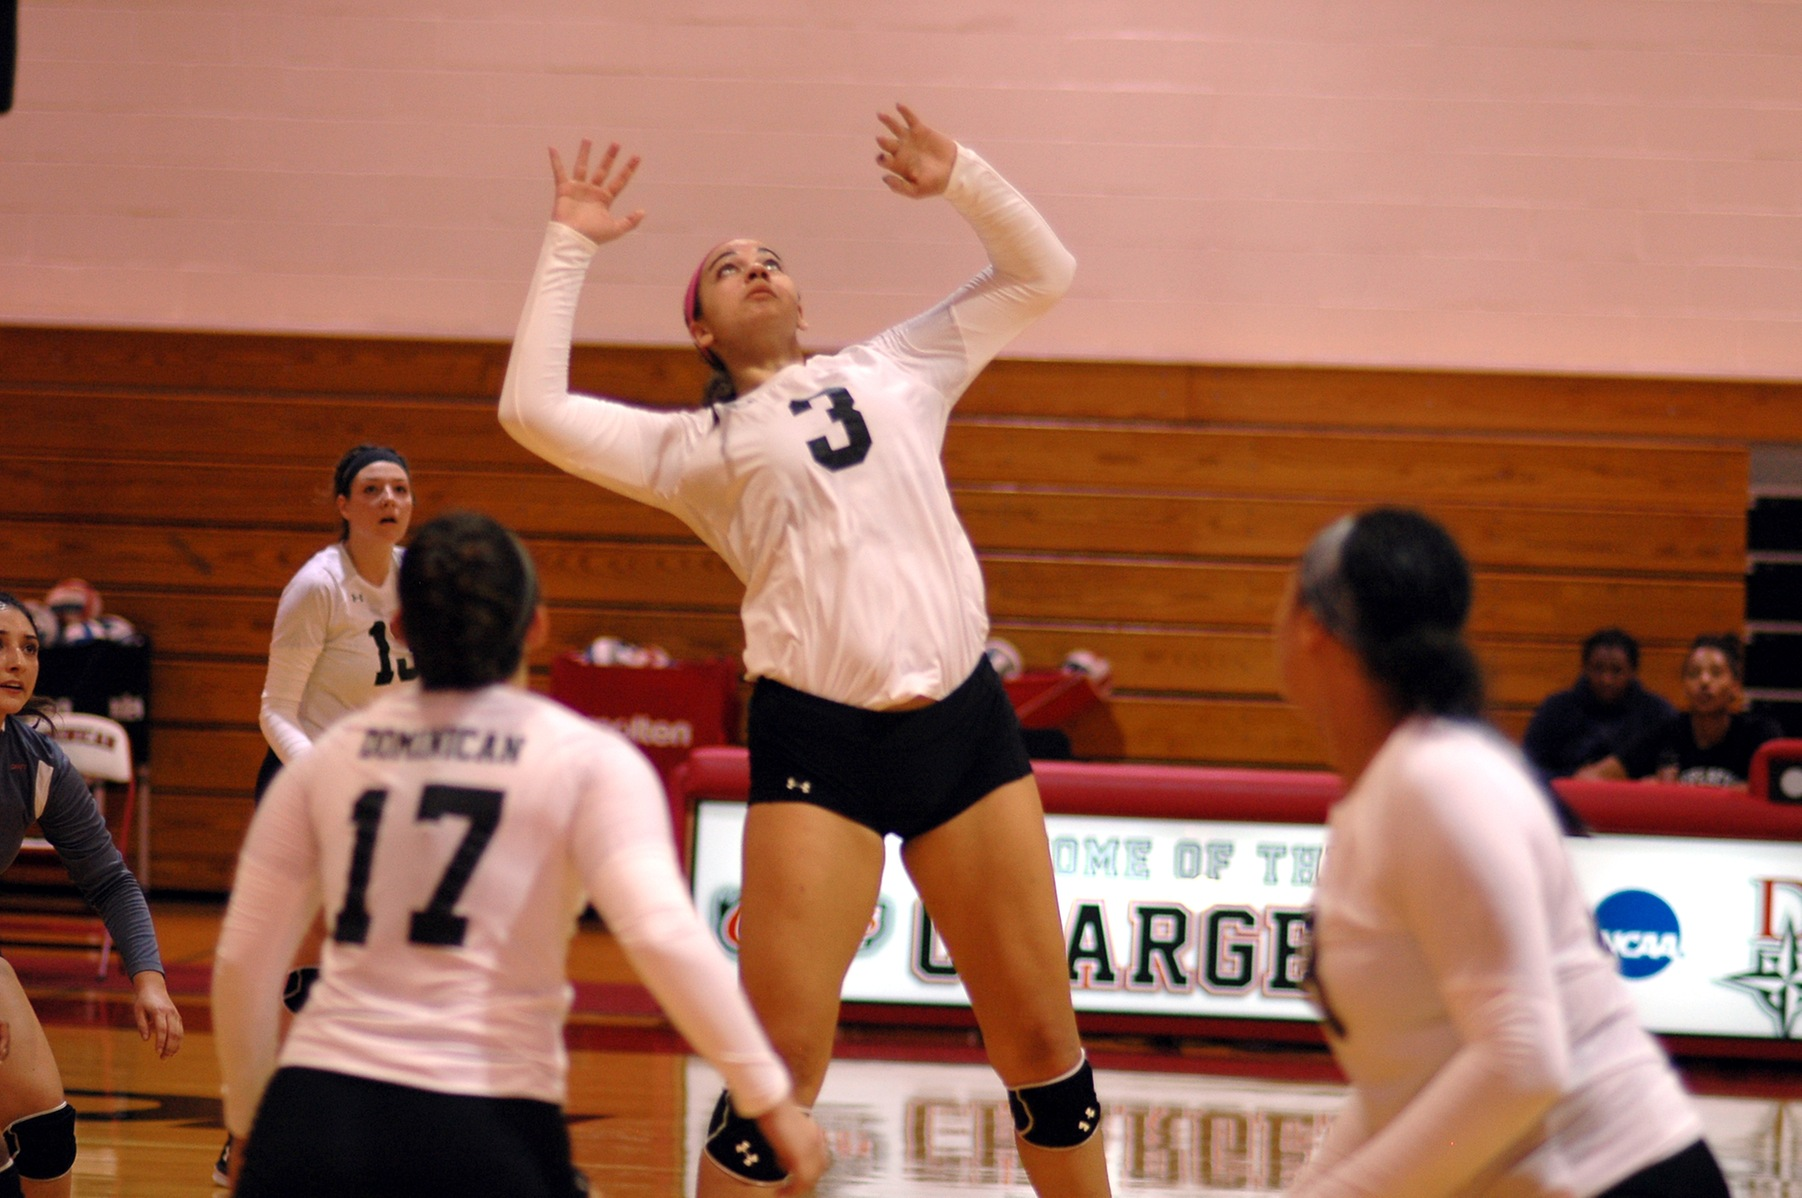 VOLLEYBALL VICTORIOUS OVER BEARS